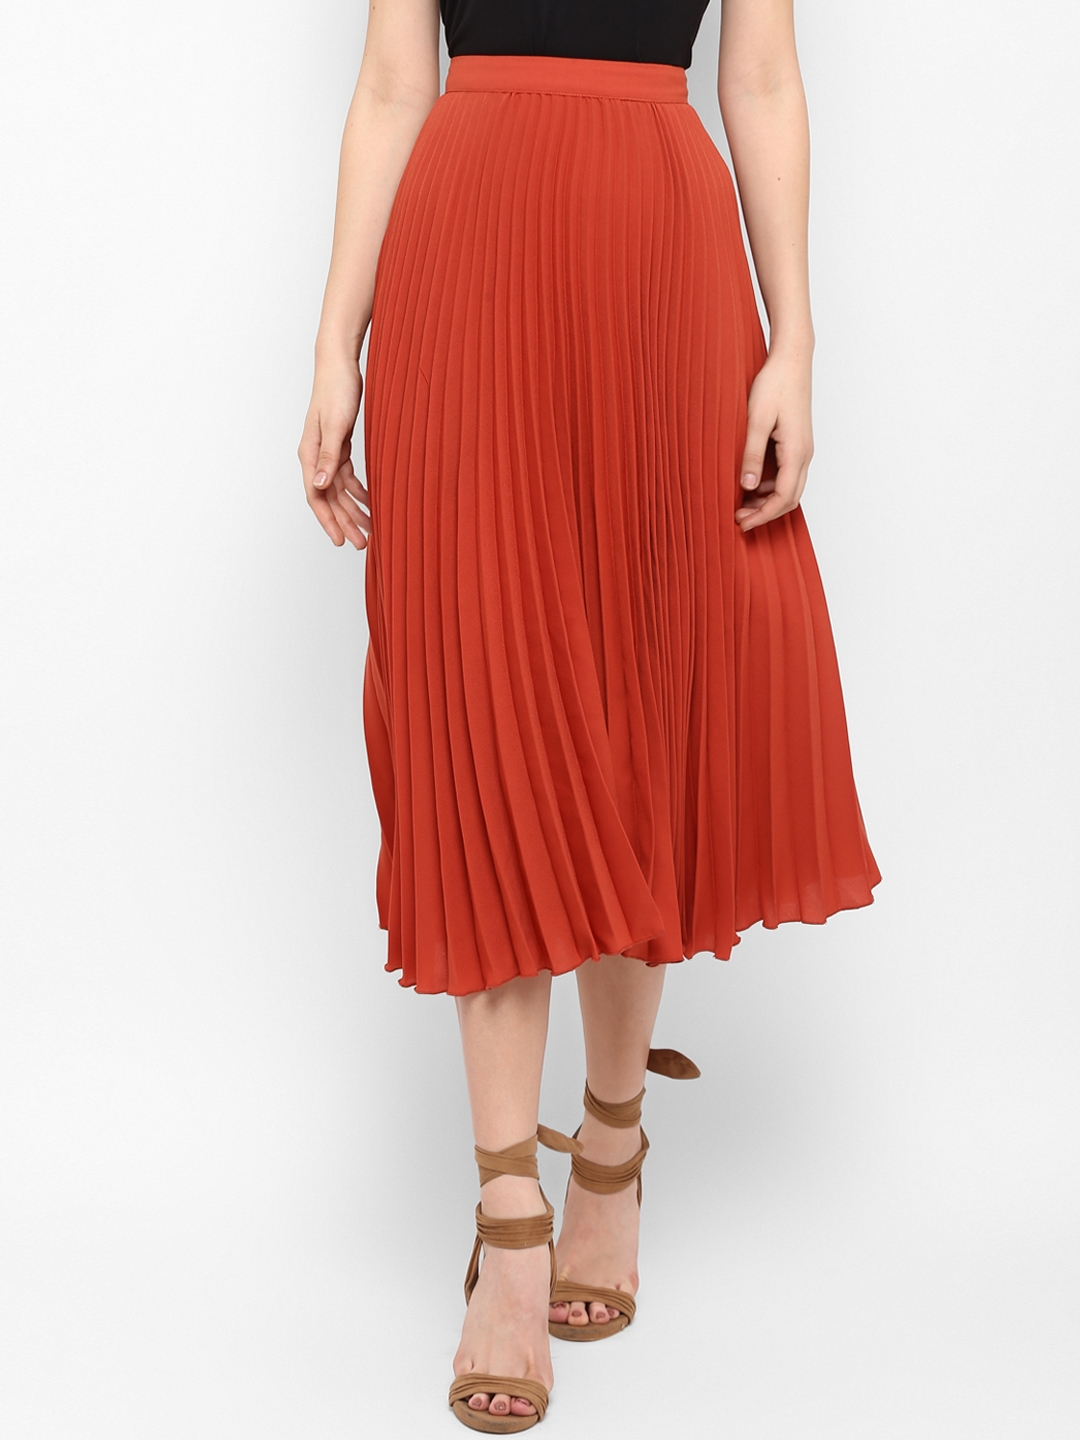 MIAMINX Women Rust Red Solid Pleated Skirt